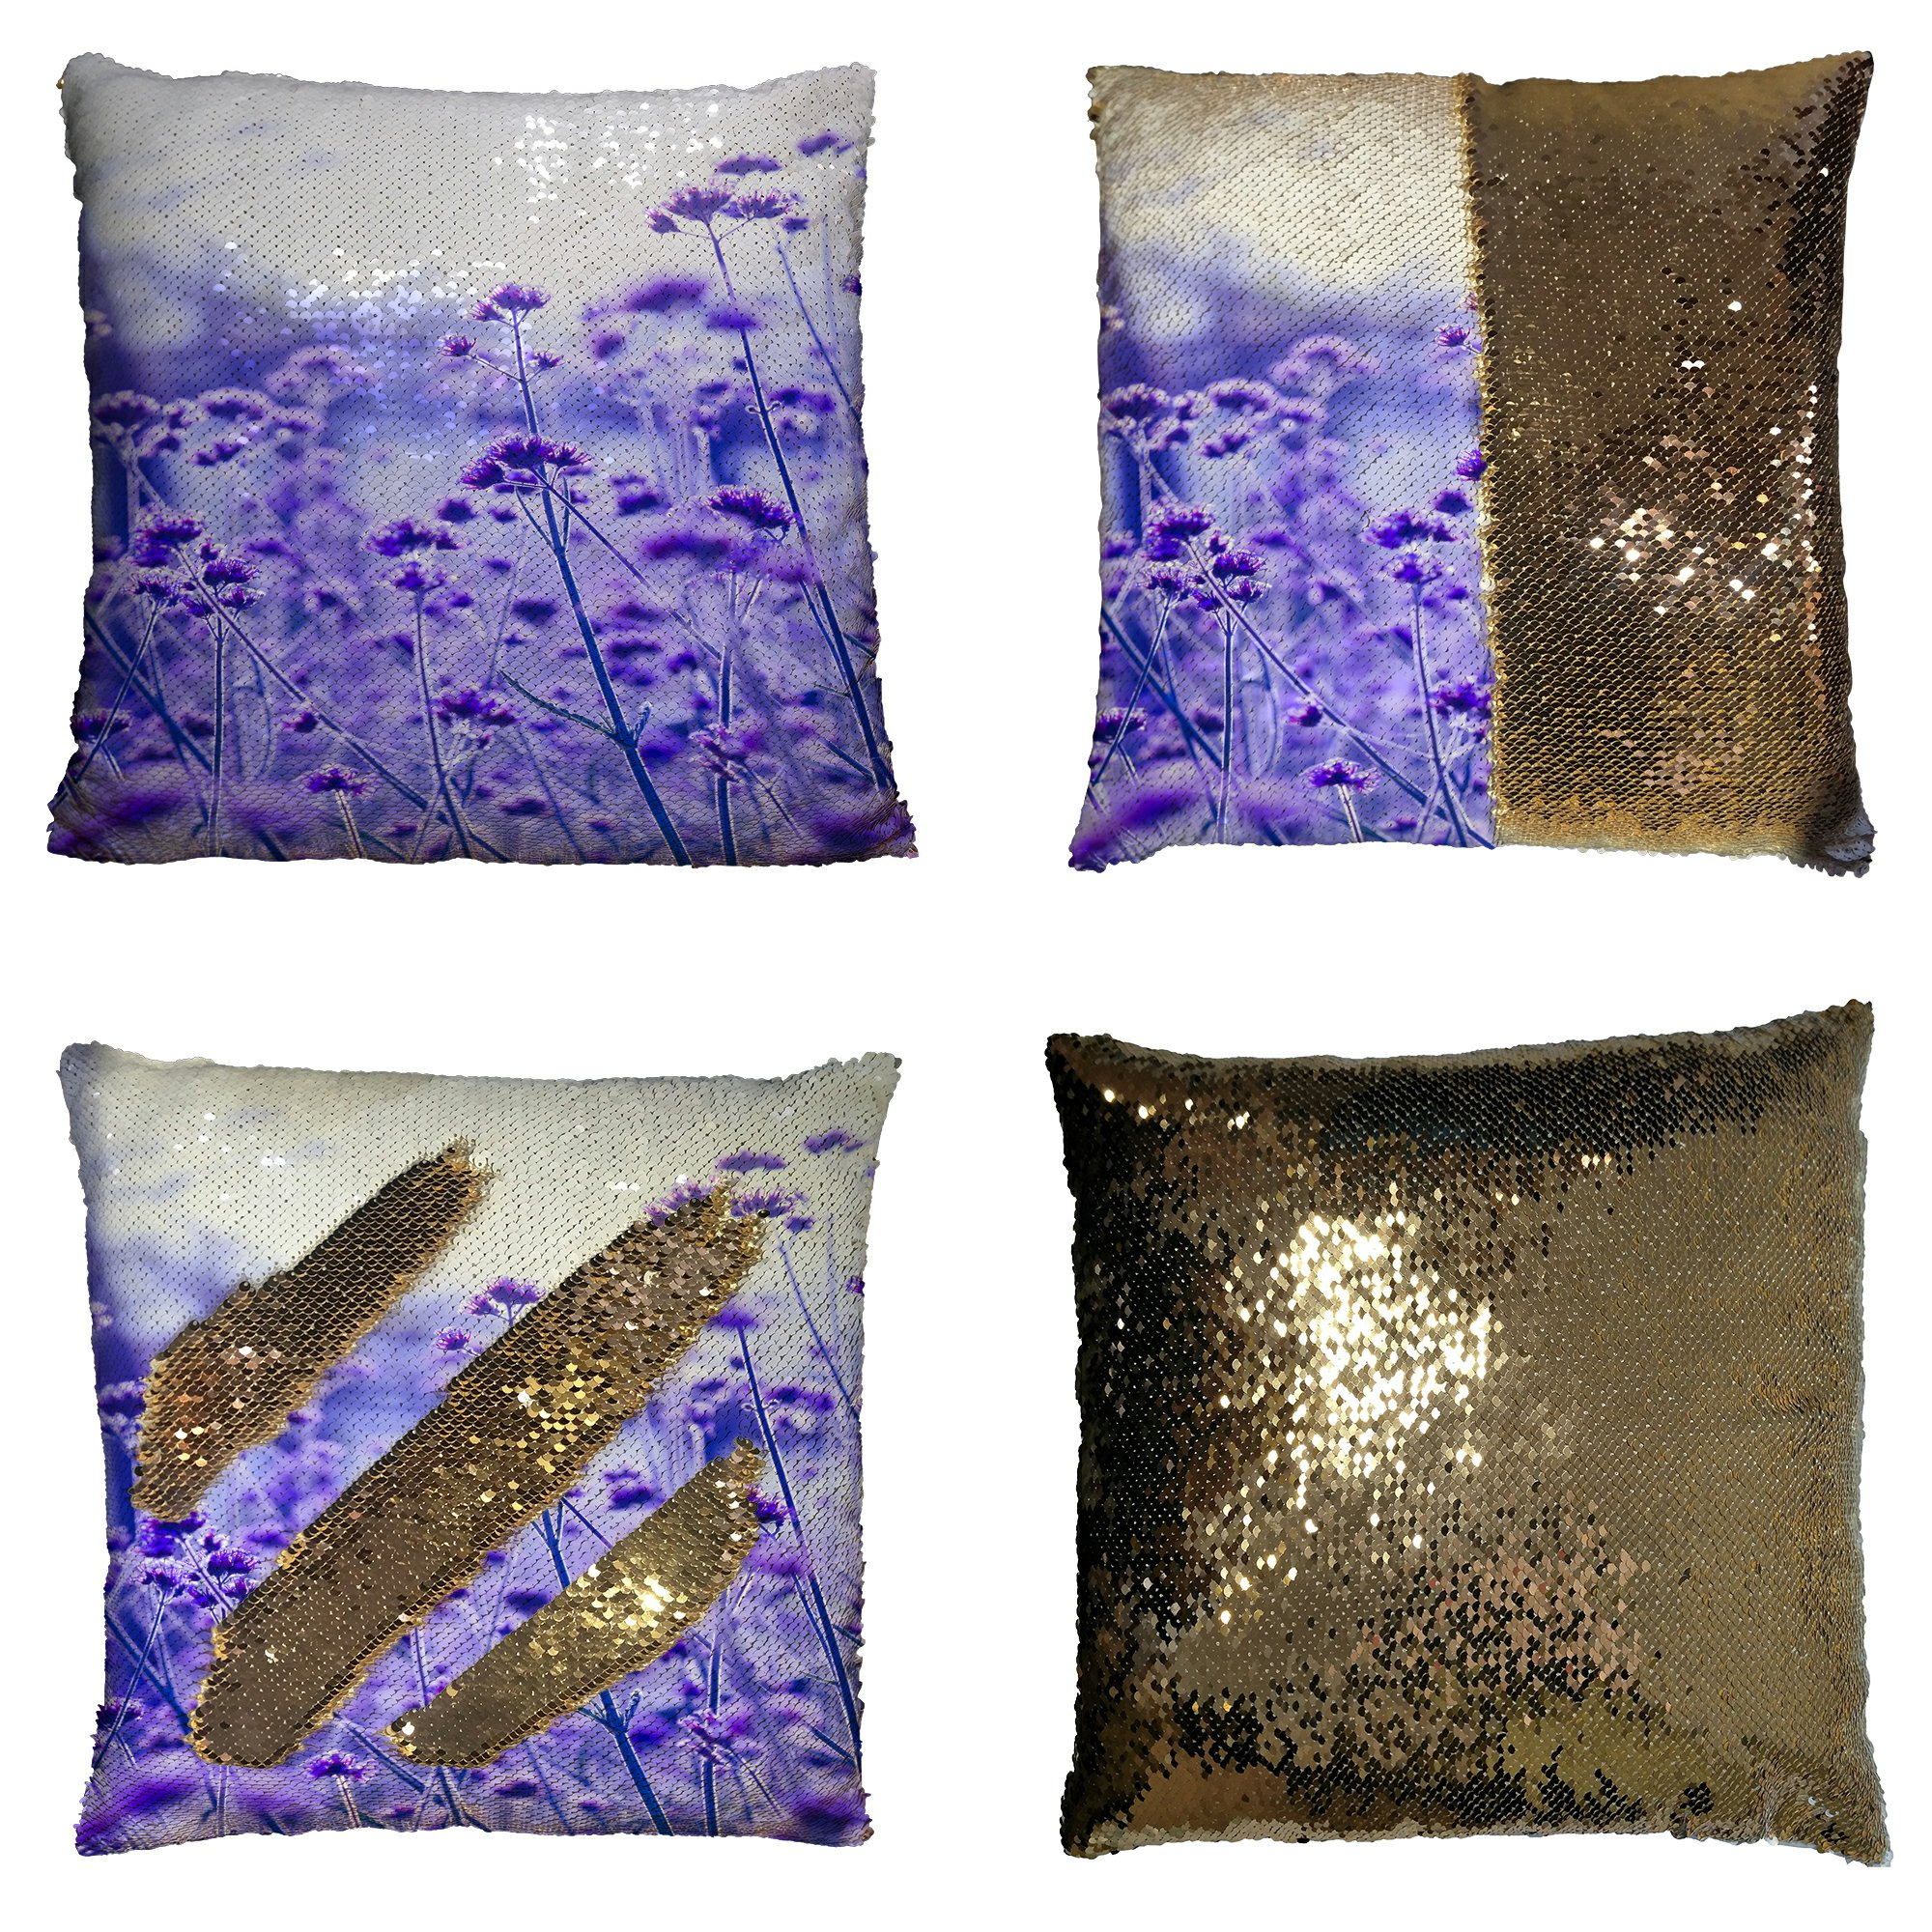 GCKG Tree of Life Pillowcase, Purple Lavender Flowers Field Reversible Mermaid Sequin Pillow Case Home Decor Cushion Cover 16x16 inches